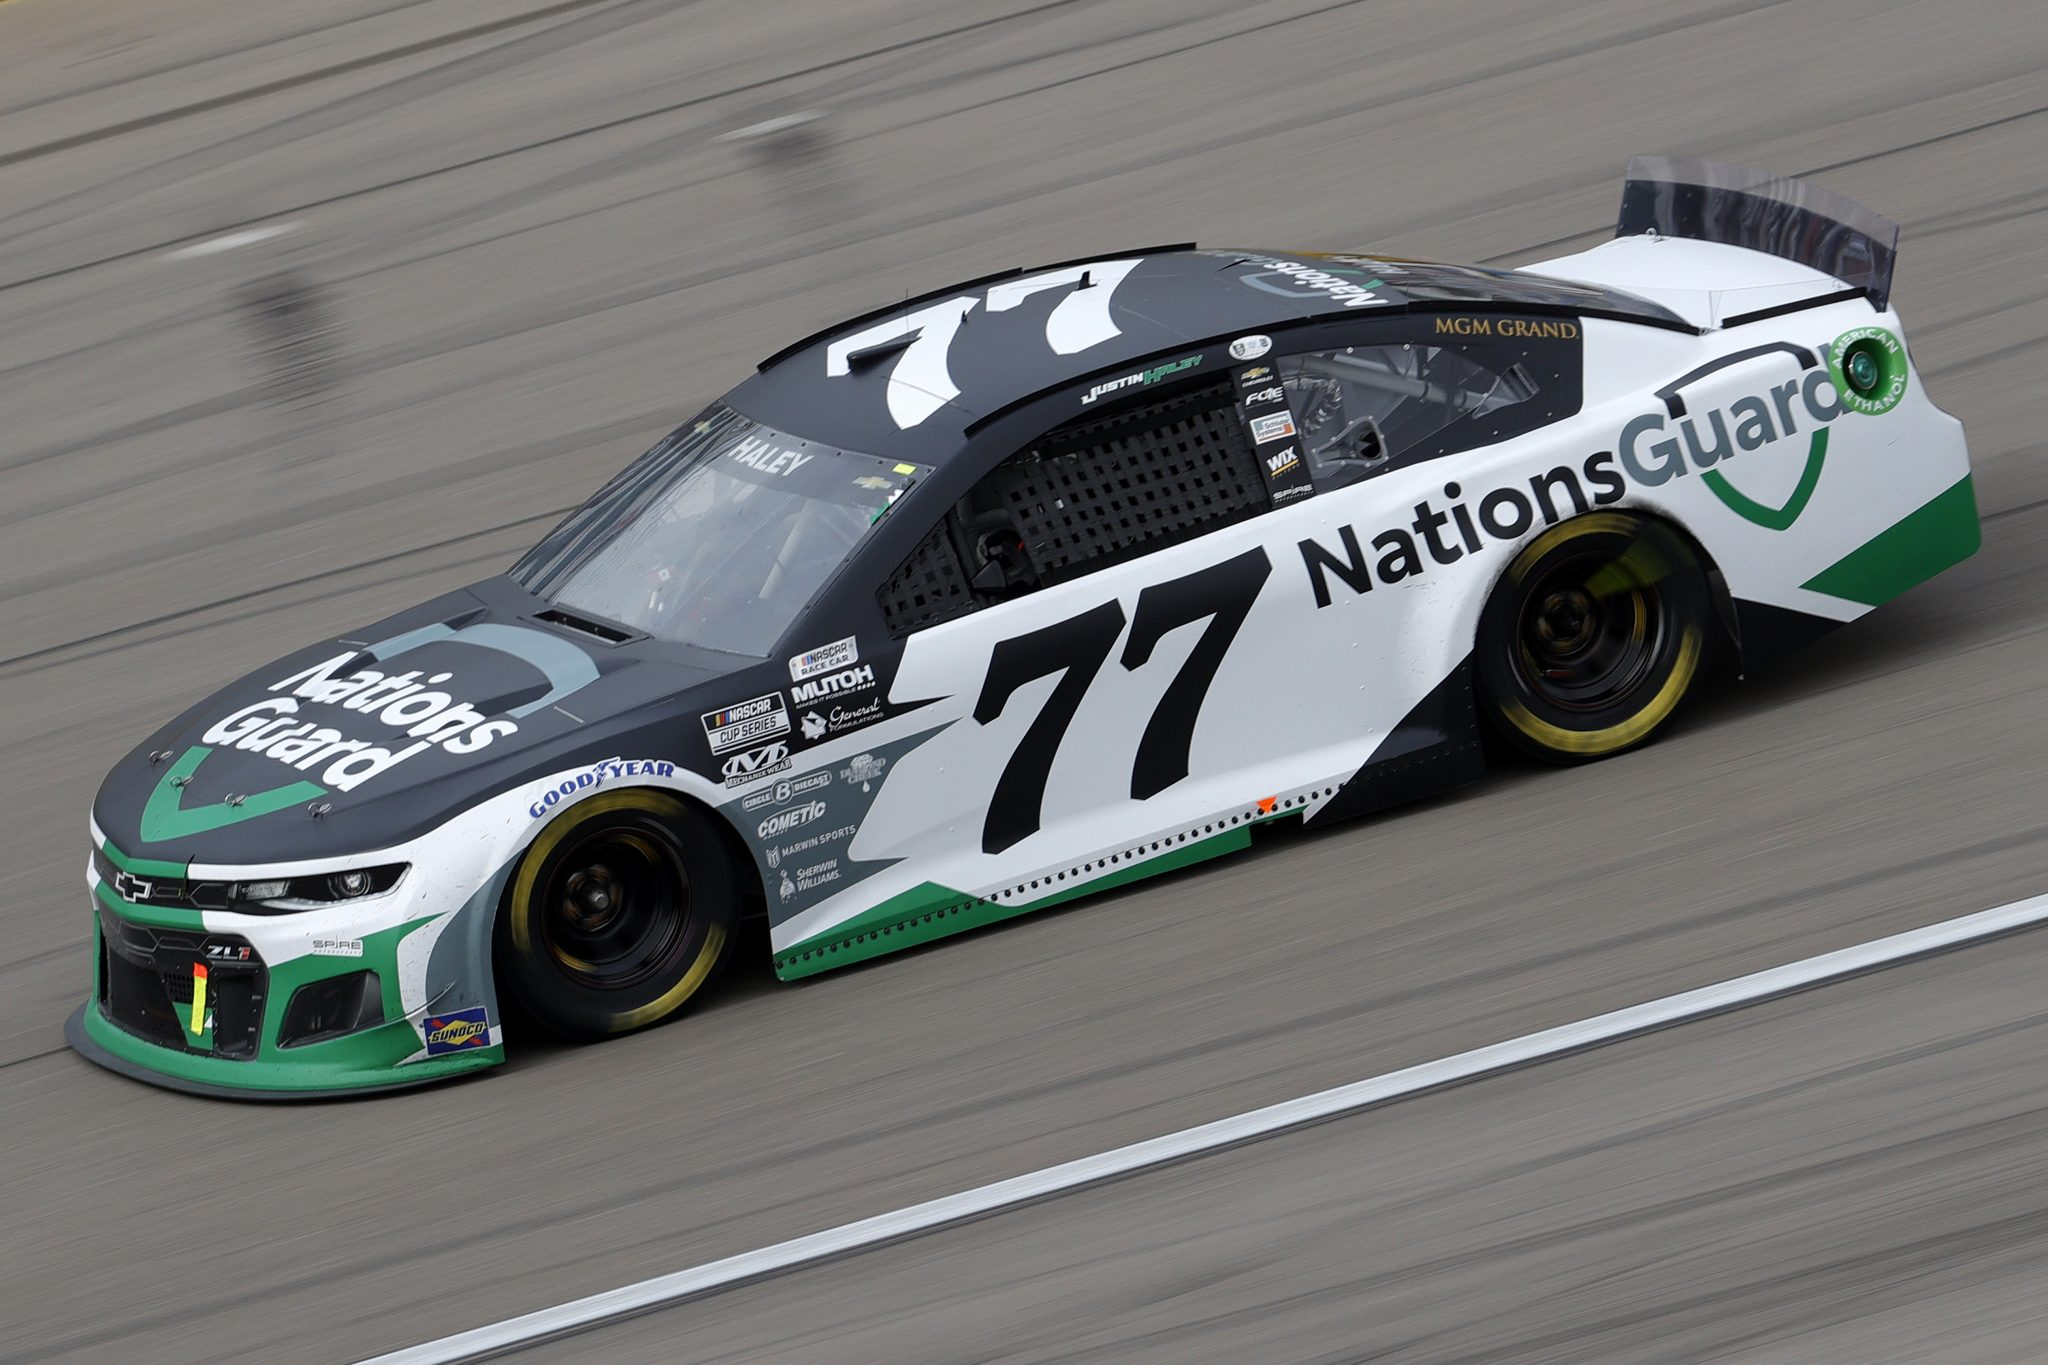 LAS VEGAS, NEVADA - MARCH 07: Justin Haley, driver of the #77 Nations Guard Chevrolet, drives during the NASCAR Cup Series Pennzoil 400 presented by Jiffy Lube at the Las Vegas Motor Speedway on March 07, 2021 in Las Vegas, Nevada. (Photo by Chris Graythen/Getty Images) | Getty Images